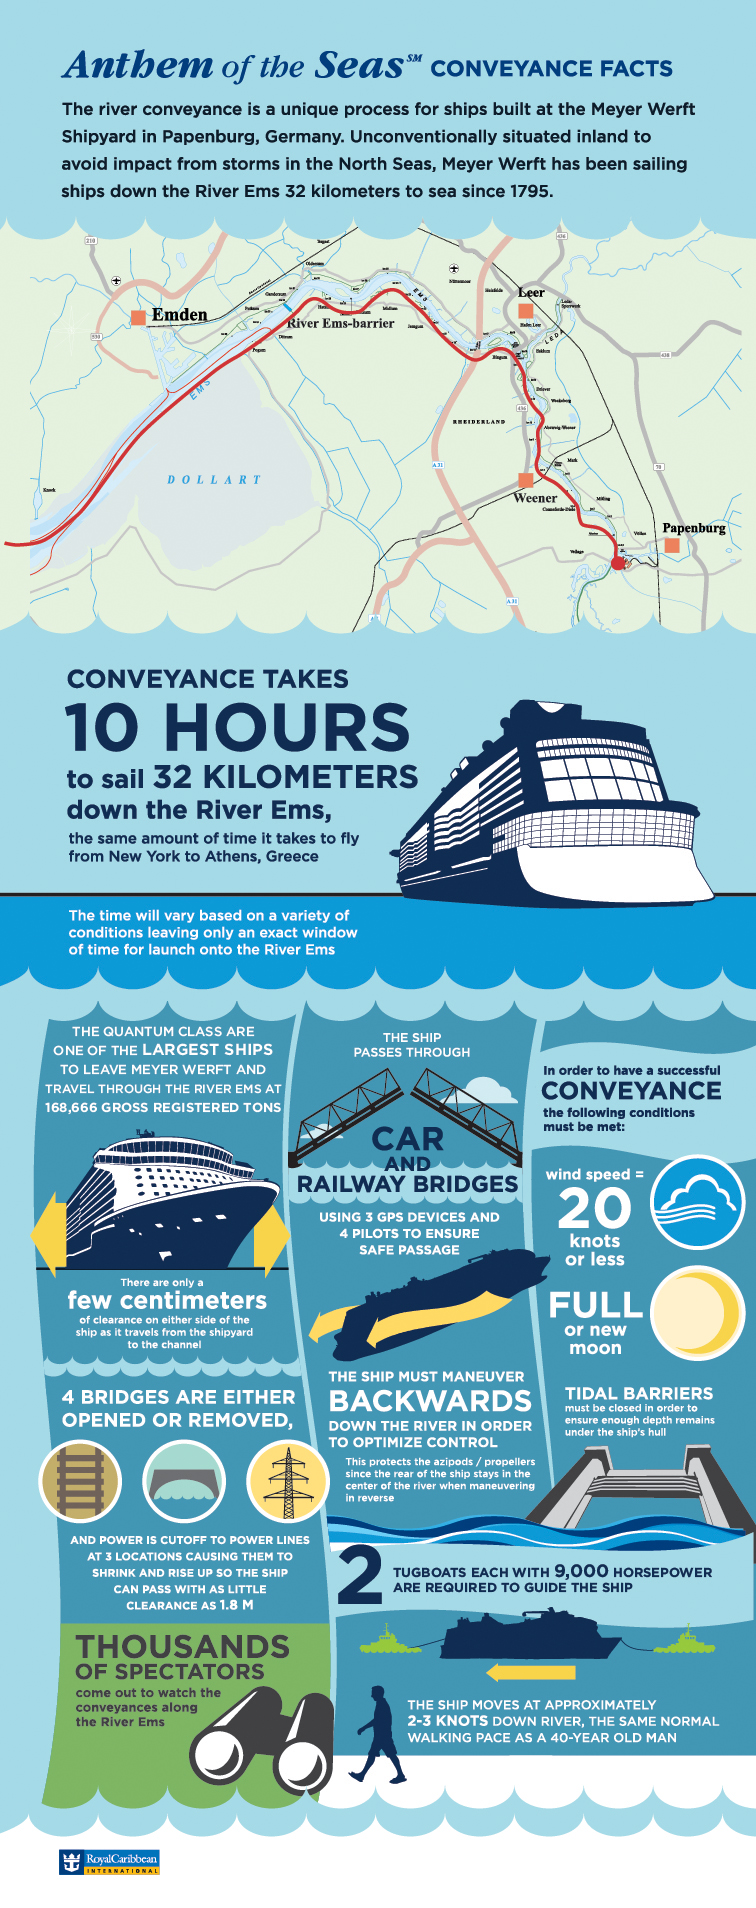 Anthem of the Seas Conveyance Facts